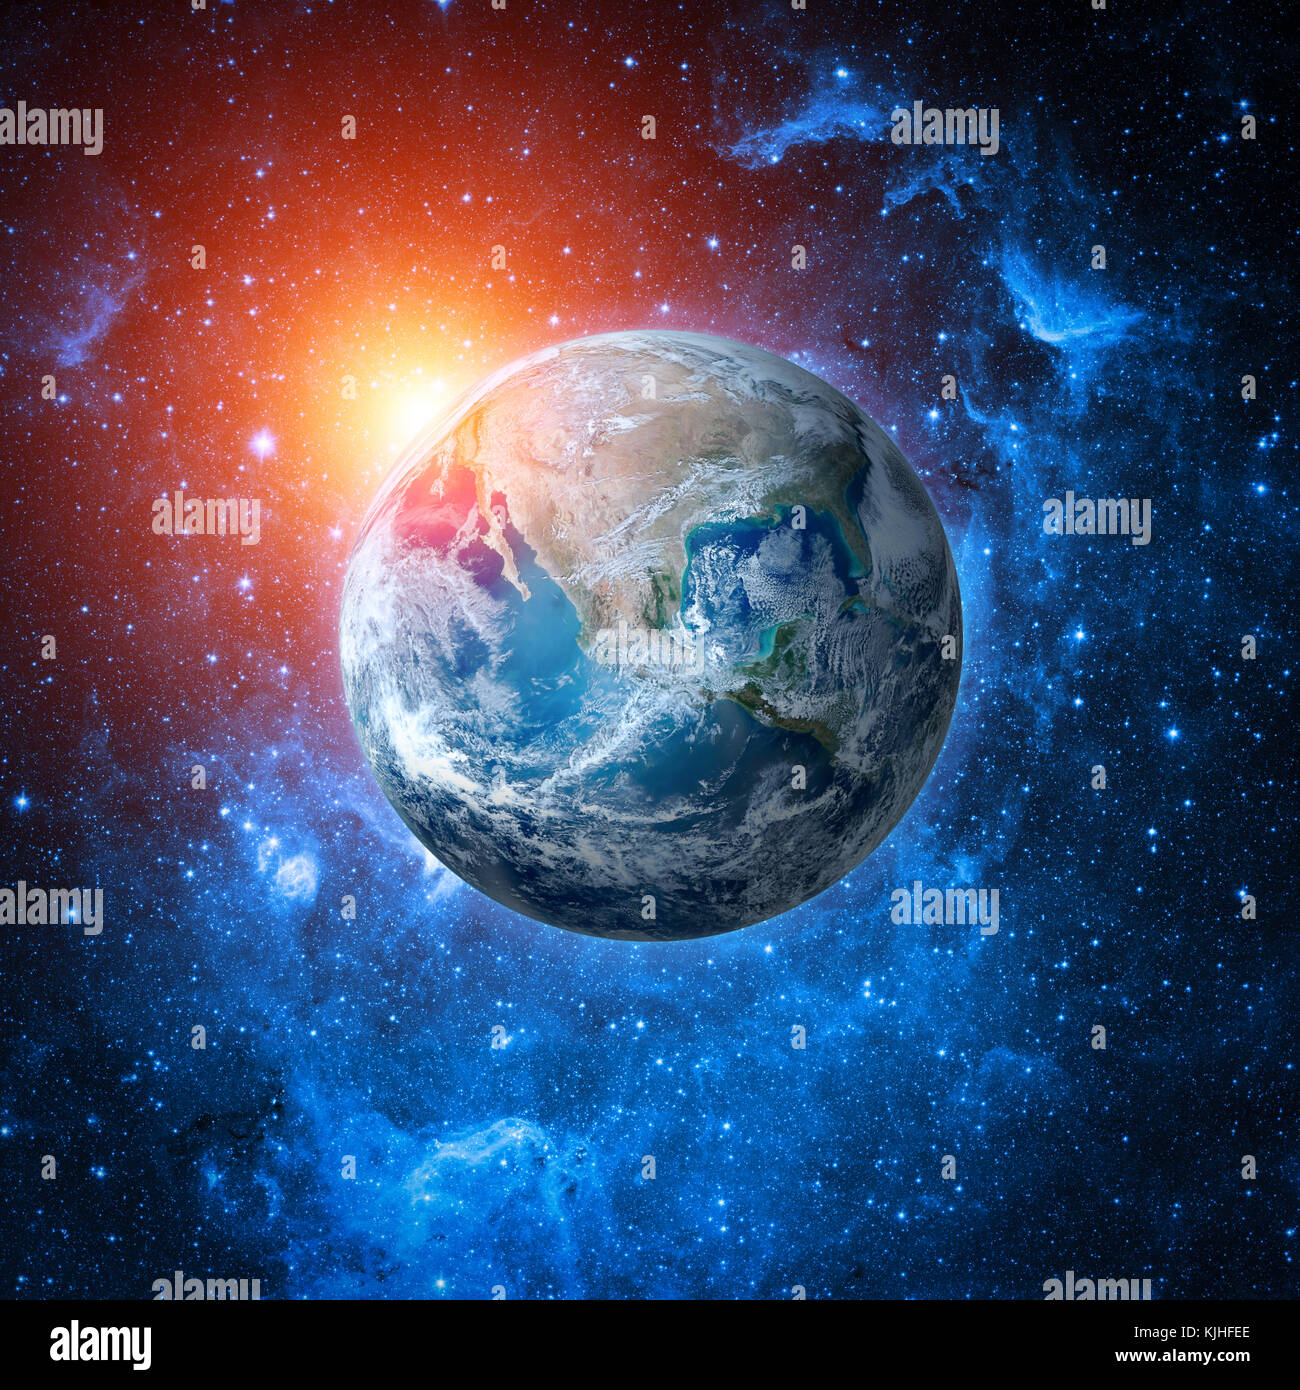 Collage of world globe from space - Stock Image